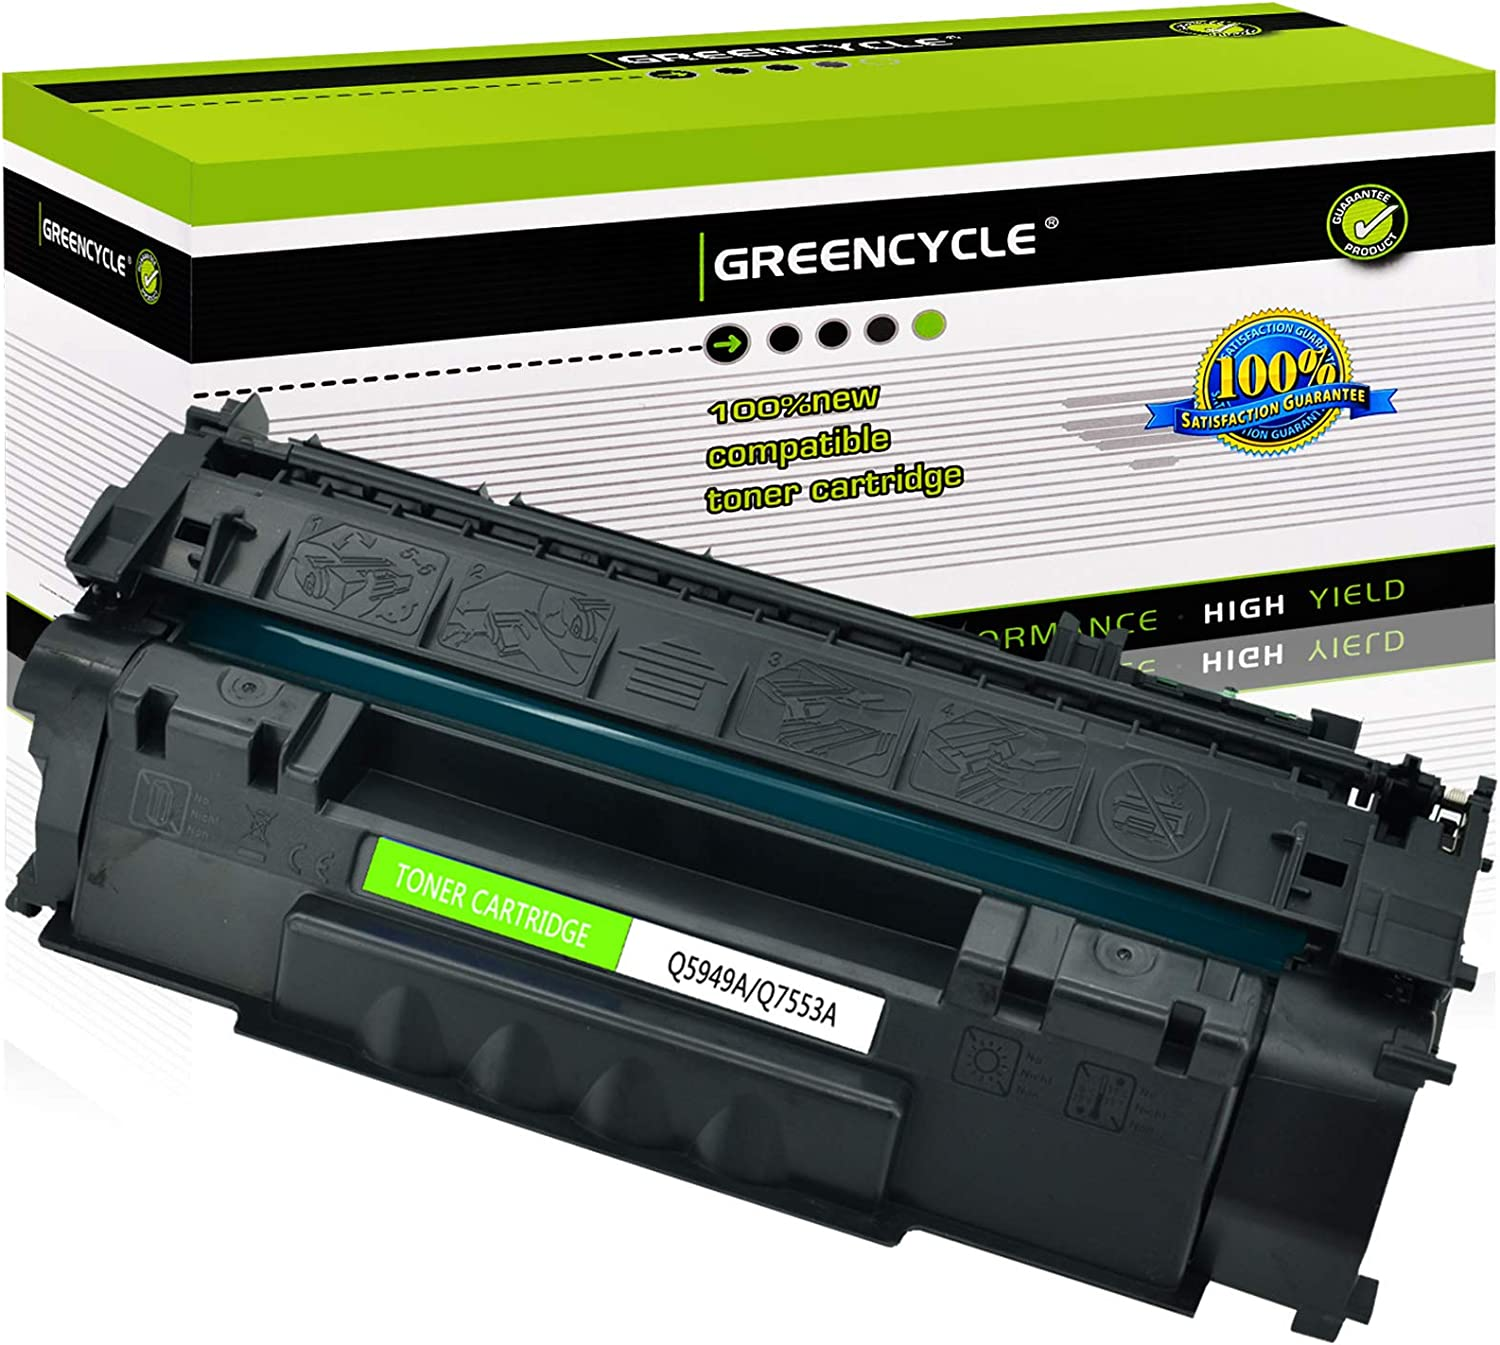 GREENCYCLE Compatible Q5949A 49A Toner Cartridge Replacement for HP Laserjet 1160 1320 1320N 1320T 1320TN 1320NW 3390 3392 Printer (Black,1 Pack)